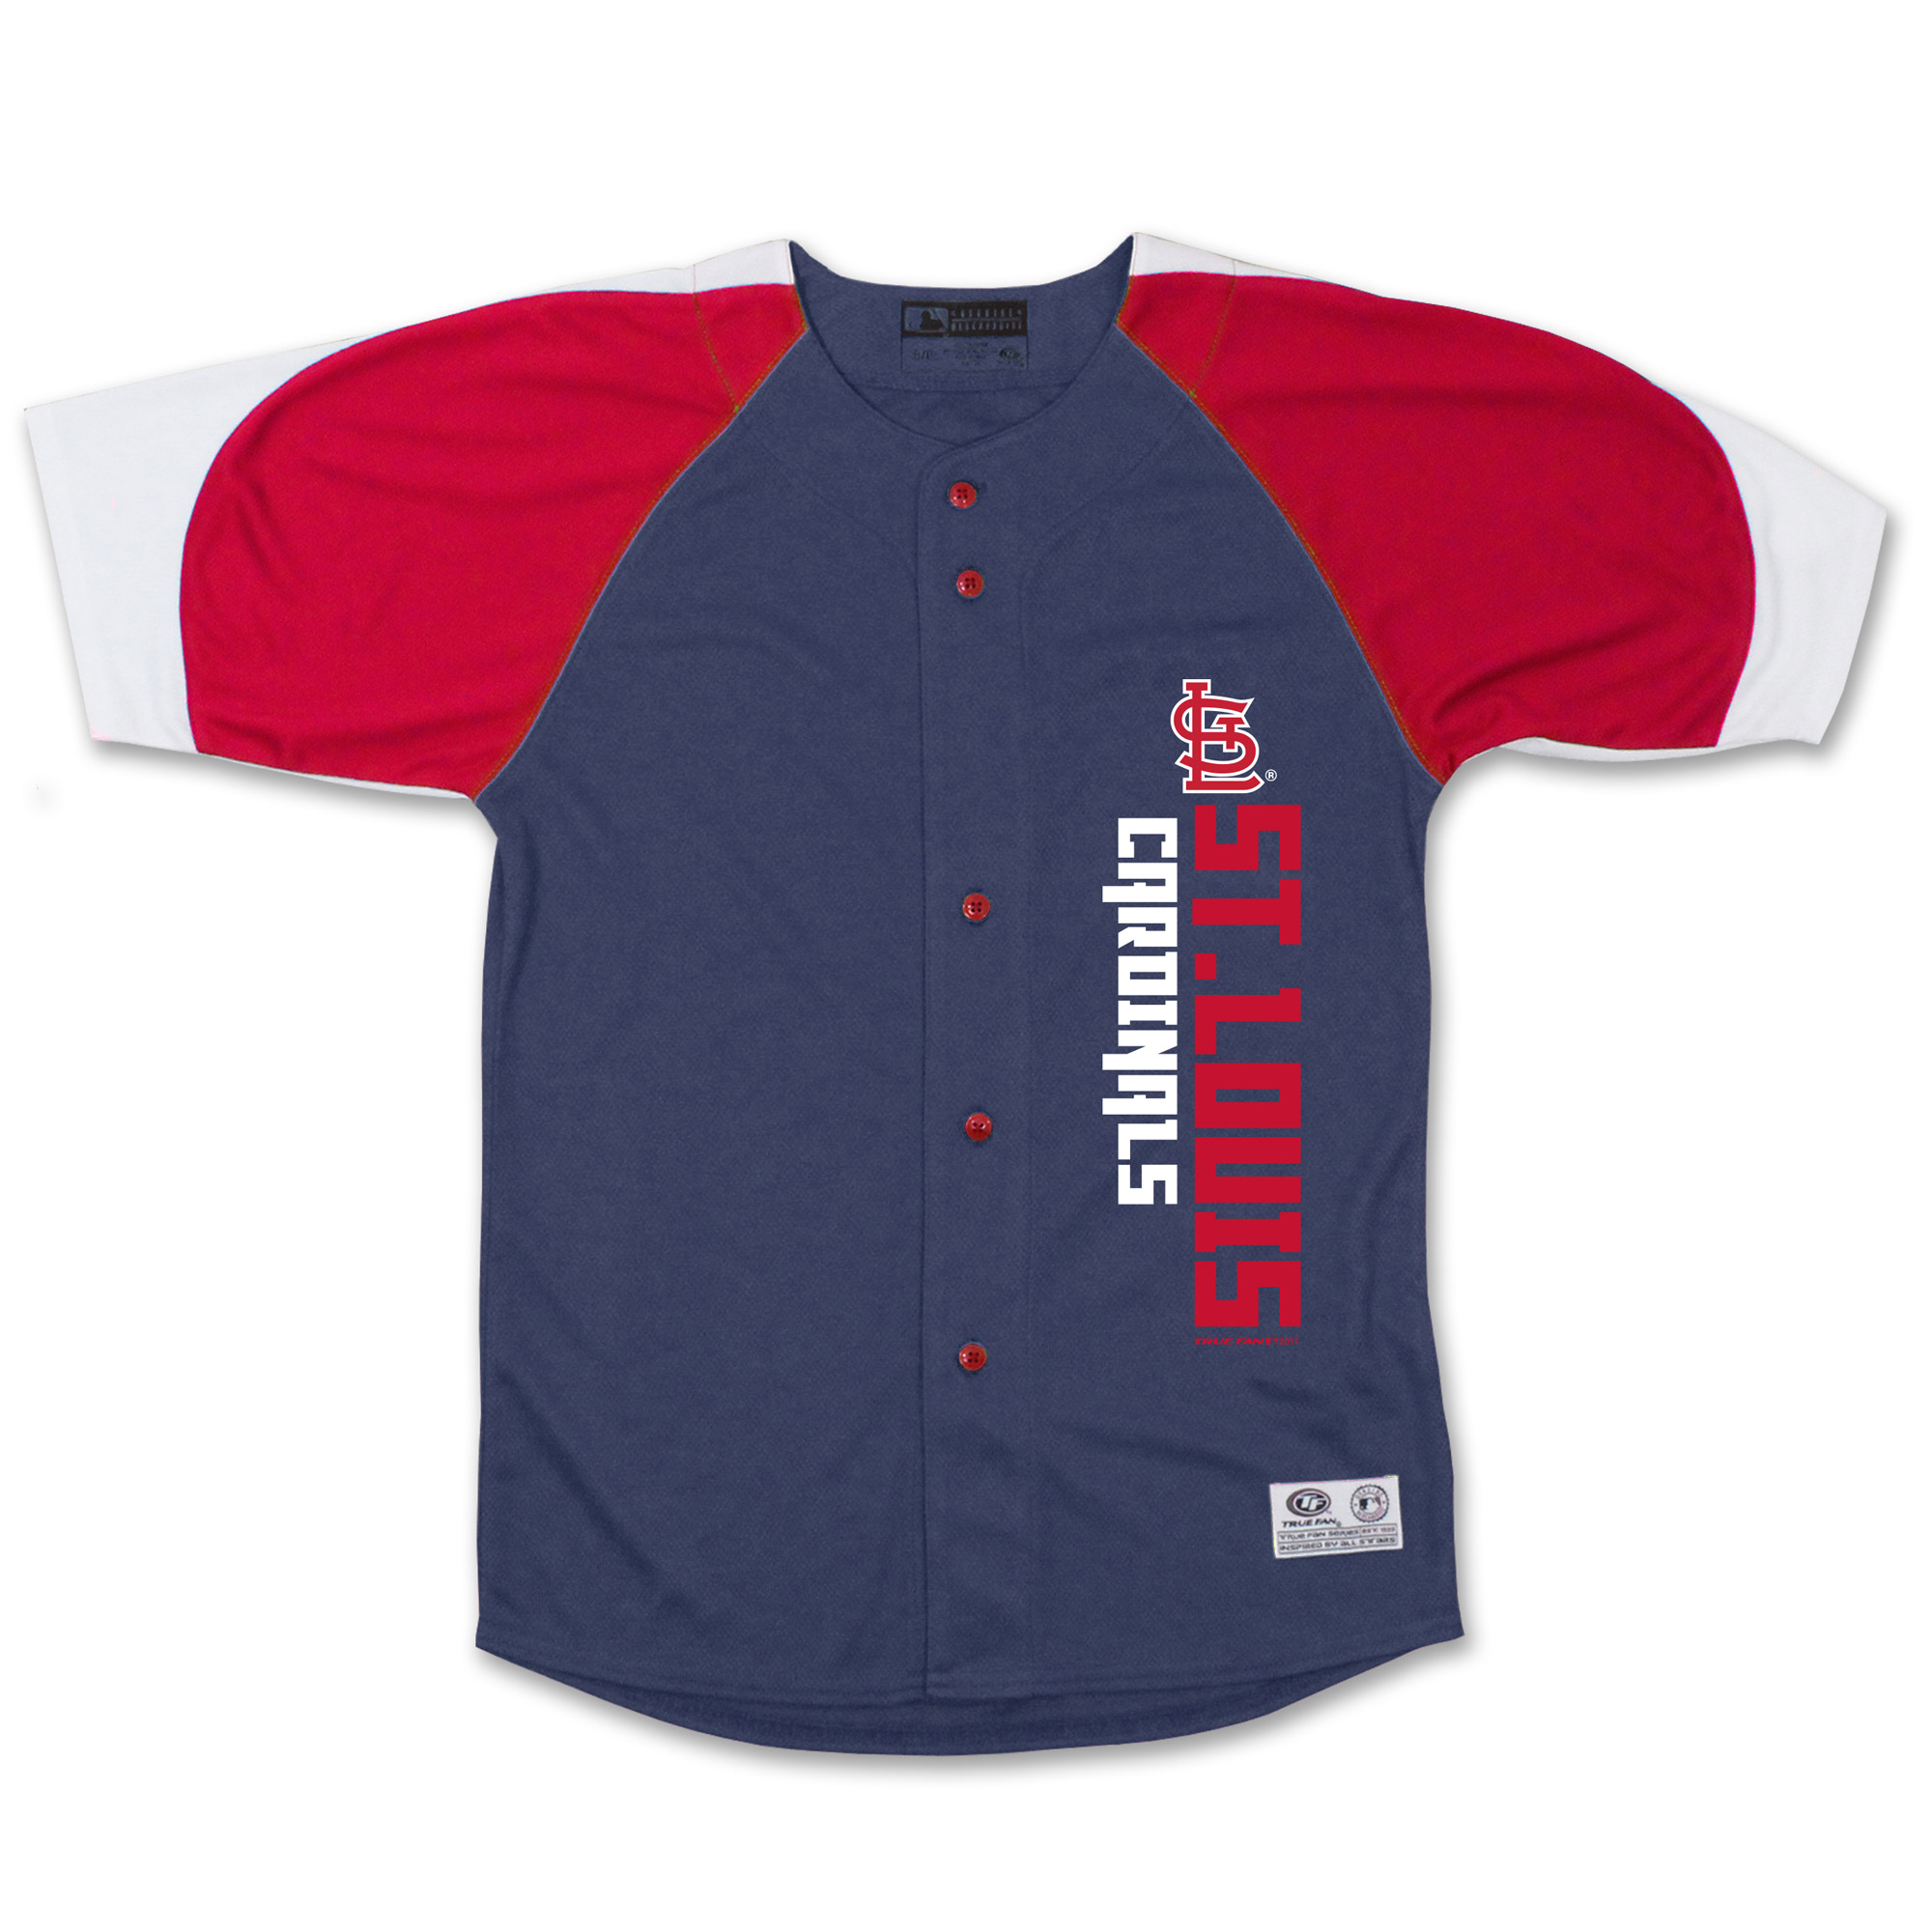 St. Louis Cardinals Stitches Youth Vertical Jersey - Navy/Red